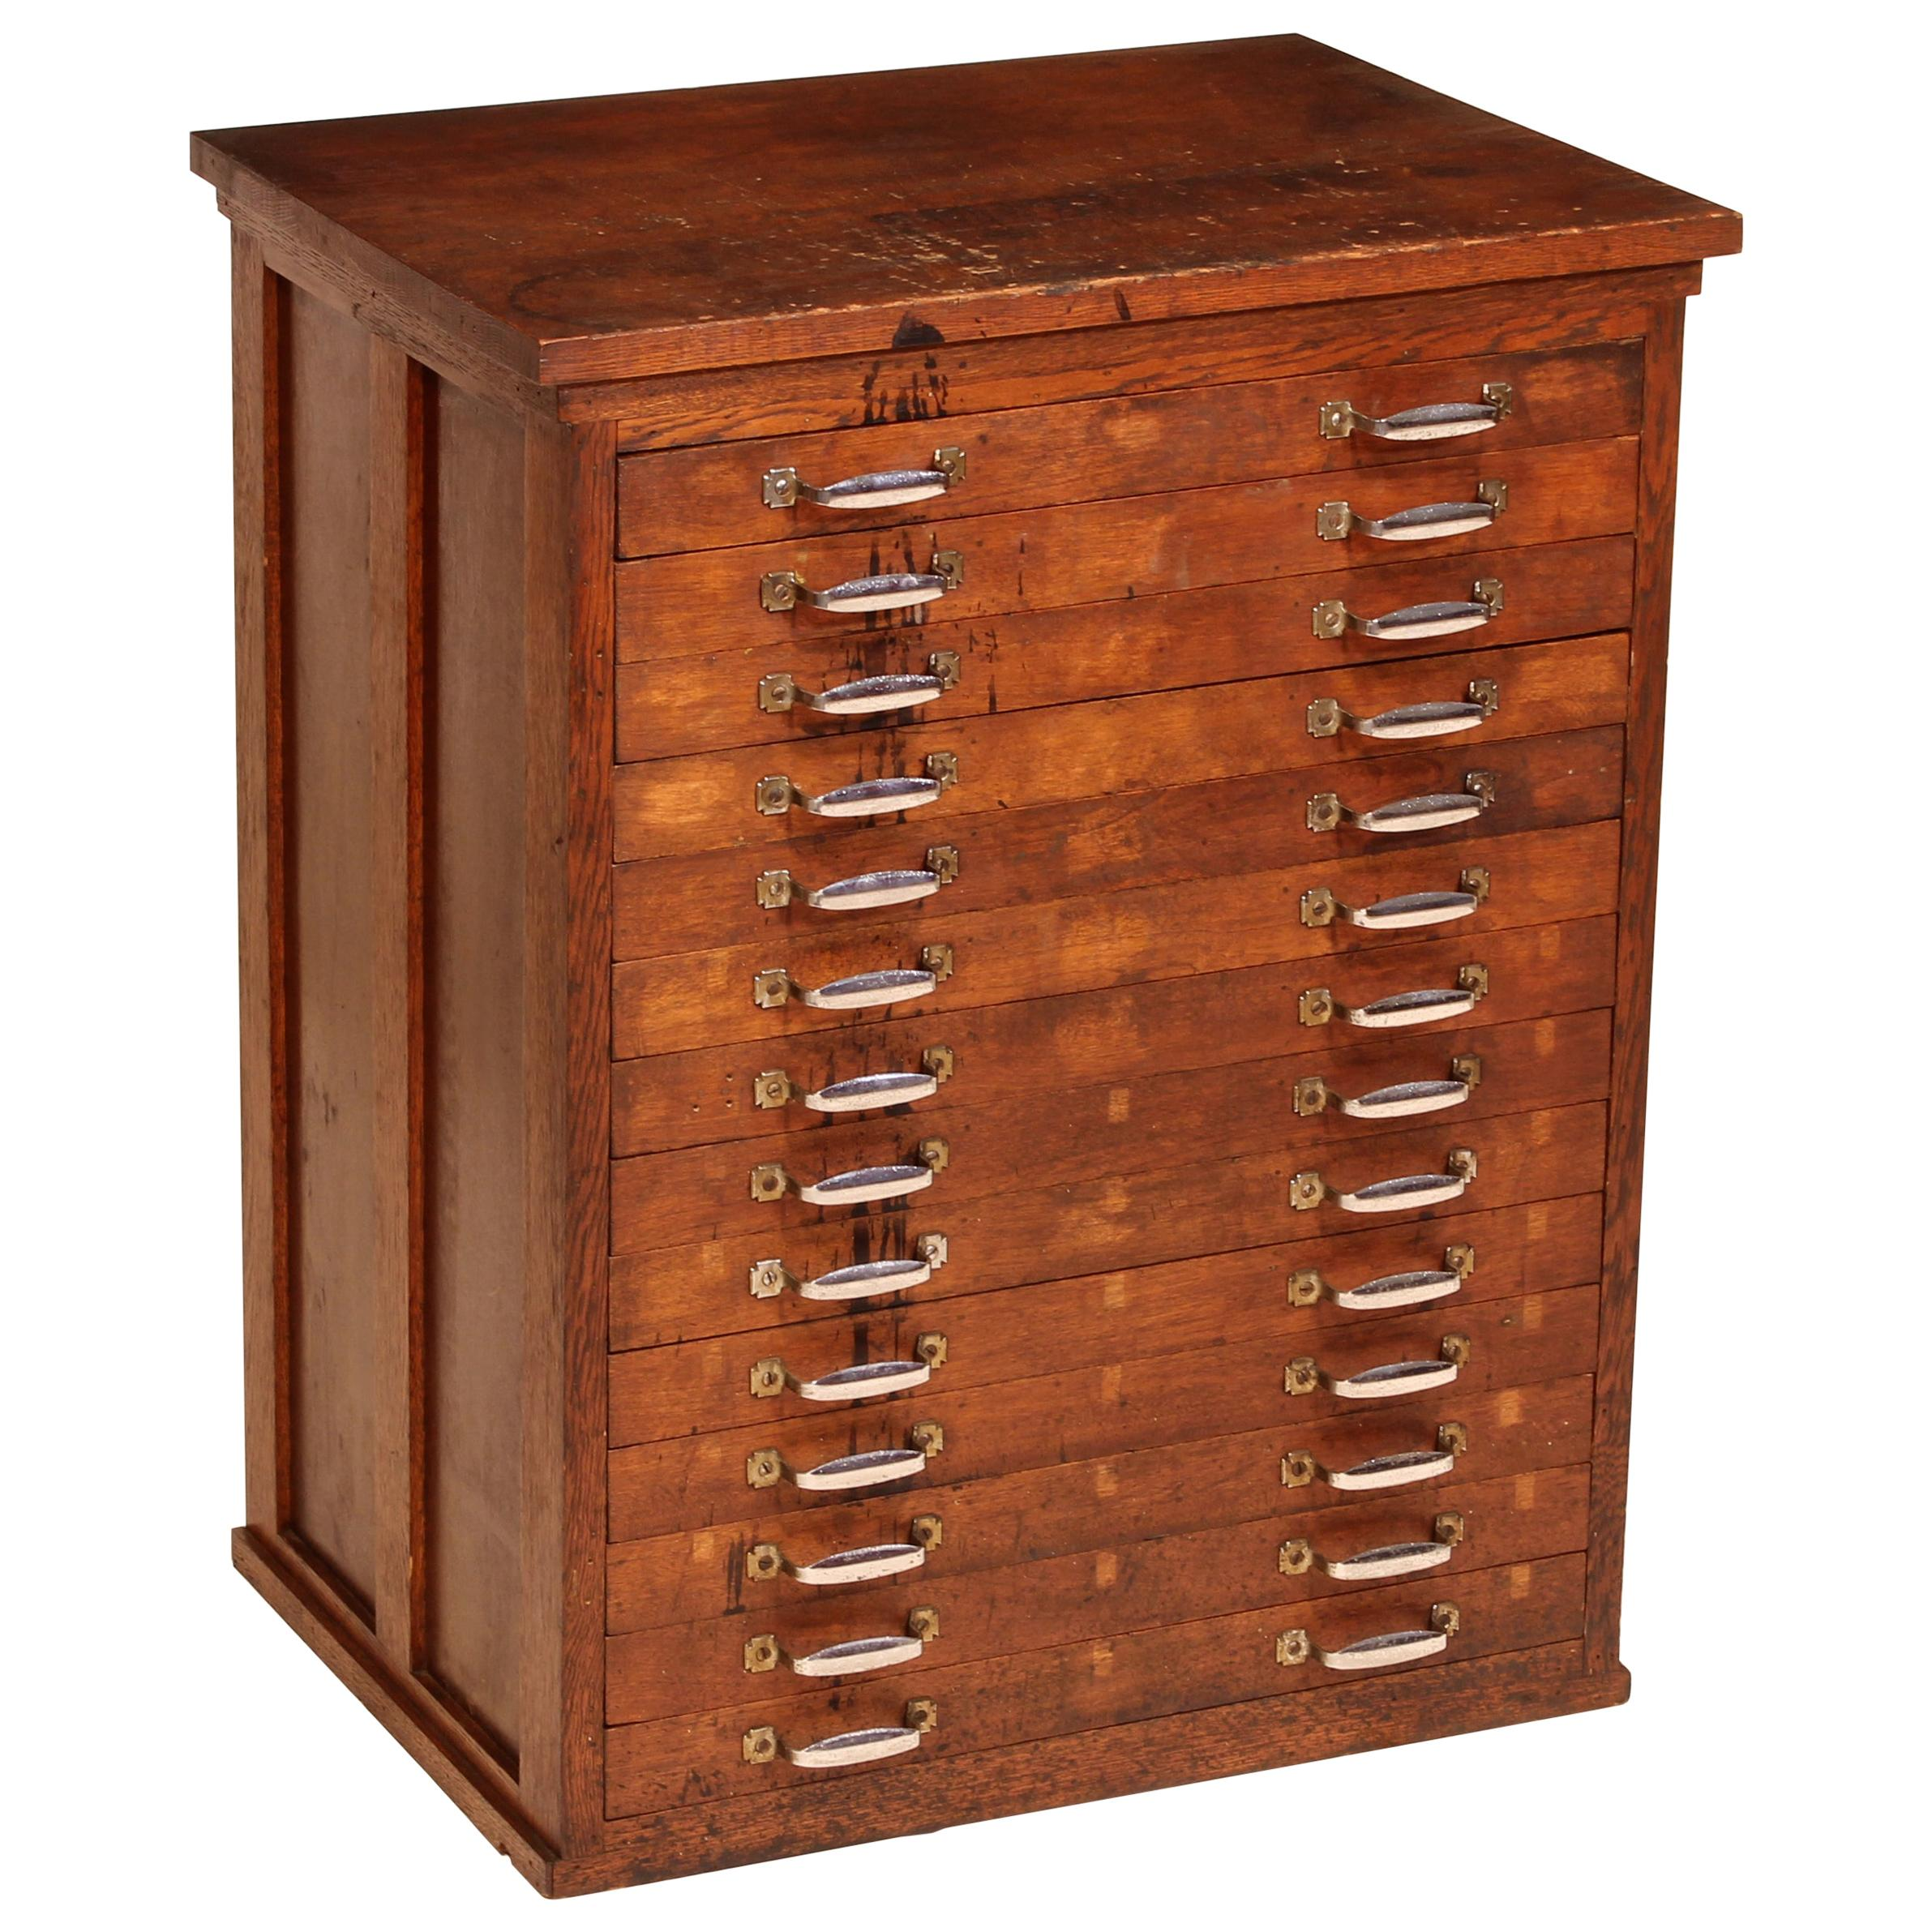 Antique Apothecary Cabinets For Sale In USA   1stdibs